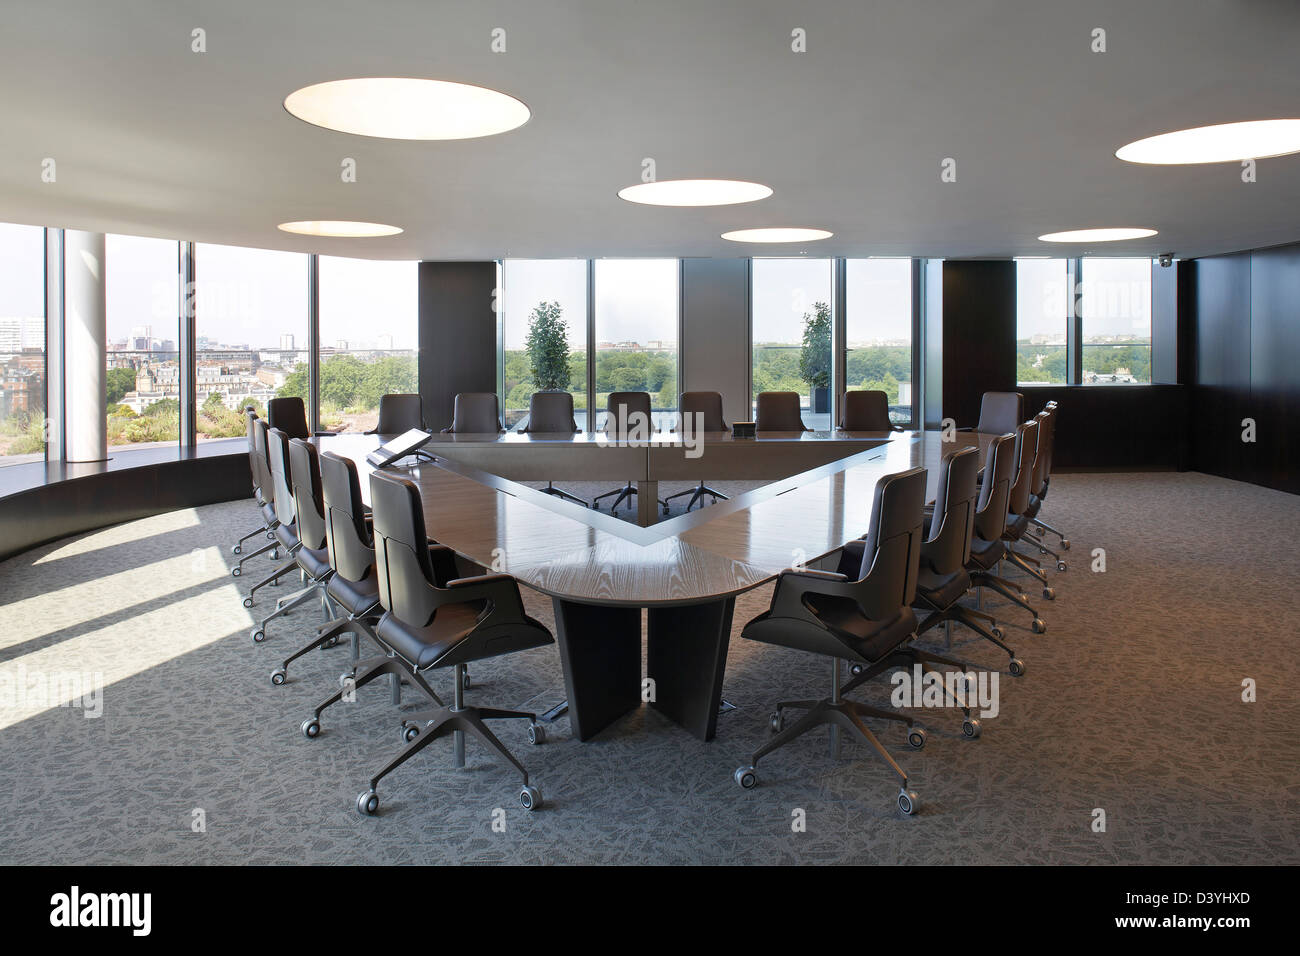 gazprom offices london headquarters london united kingdom stock